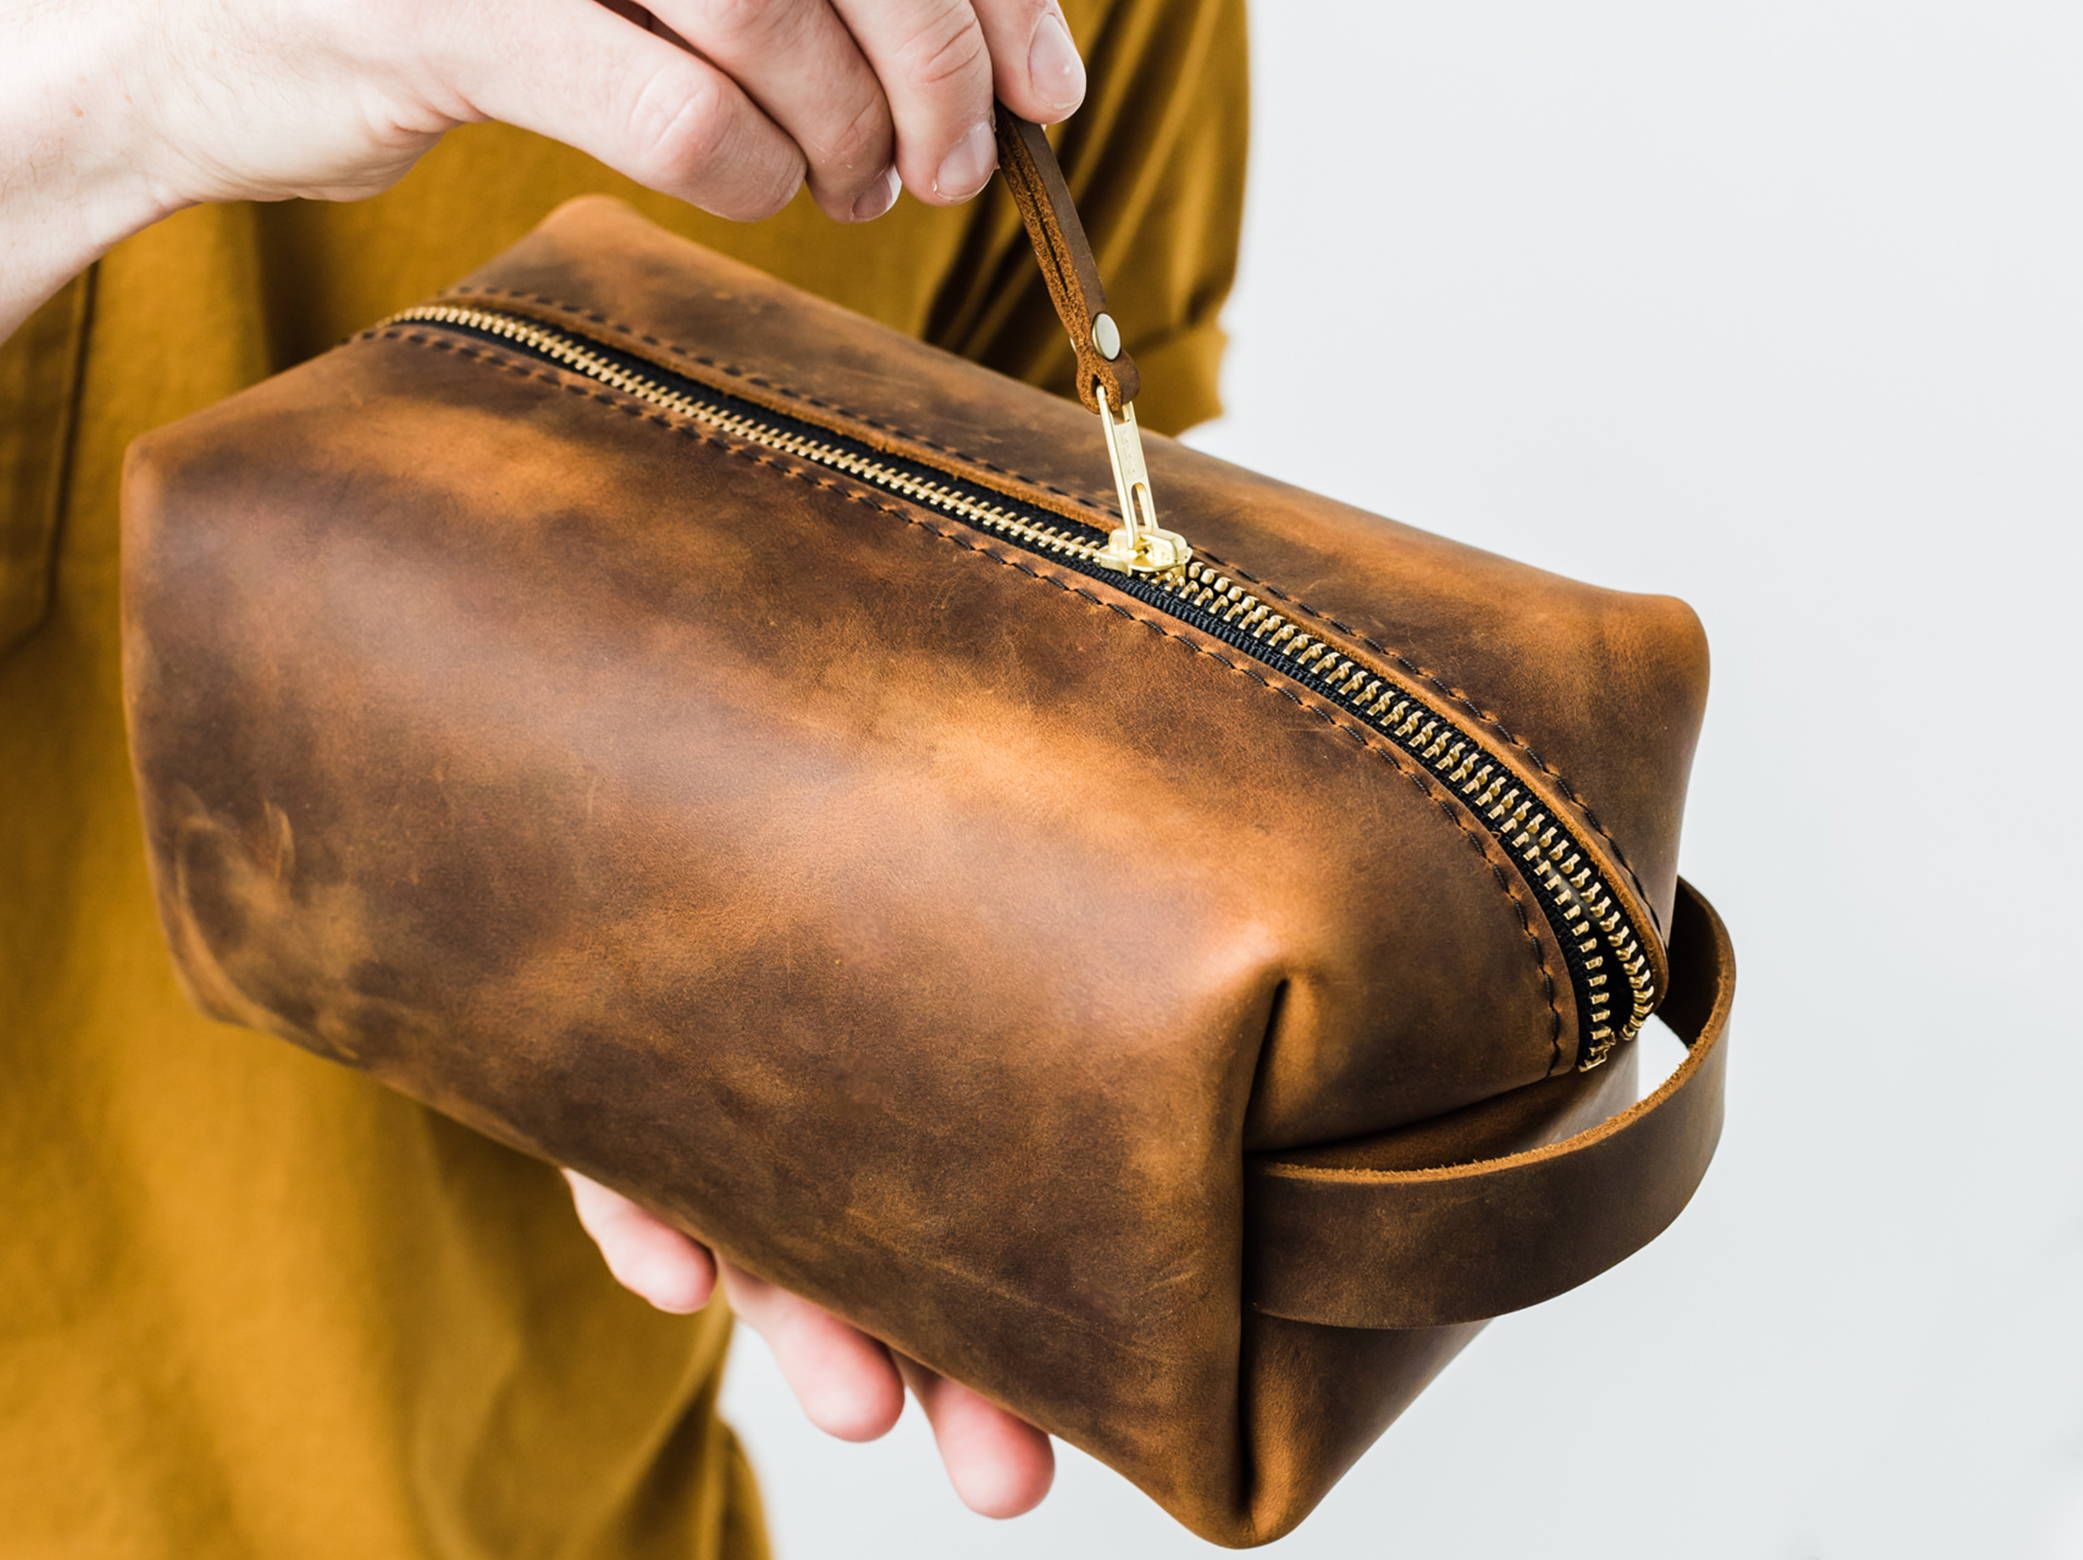 handmade leather dopp kit being unzipped